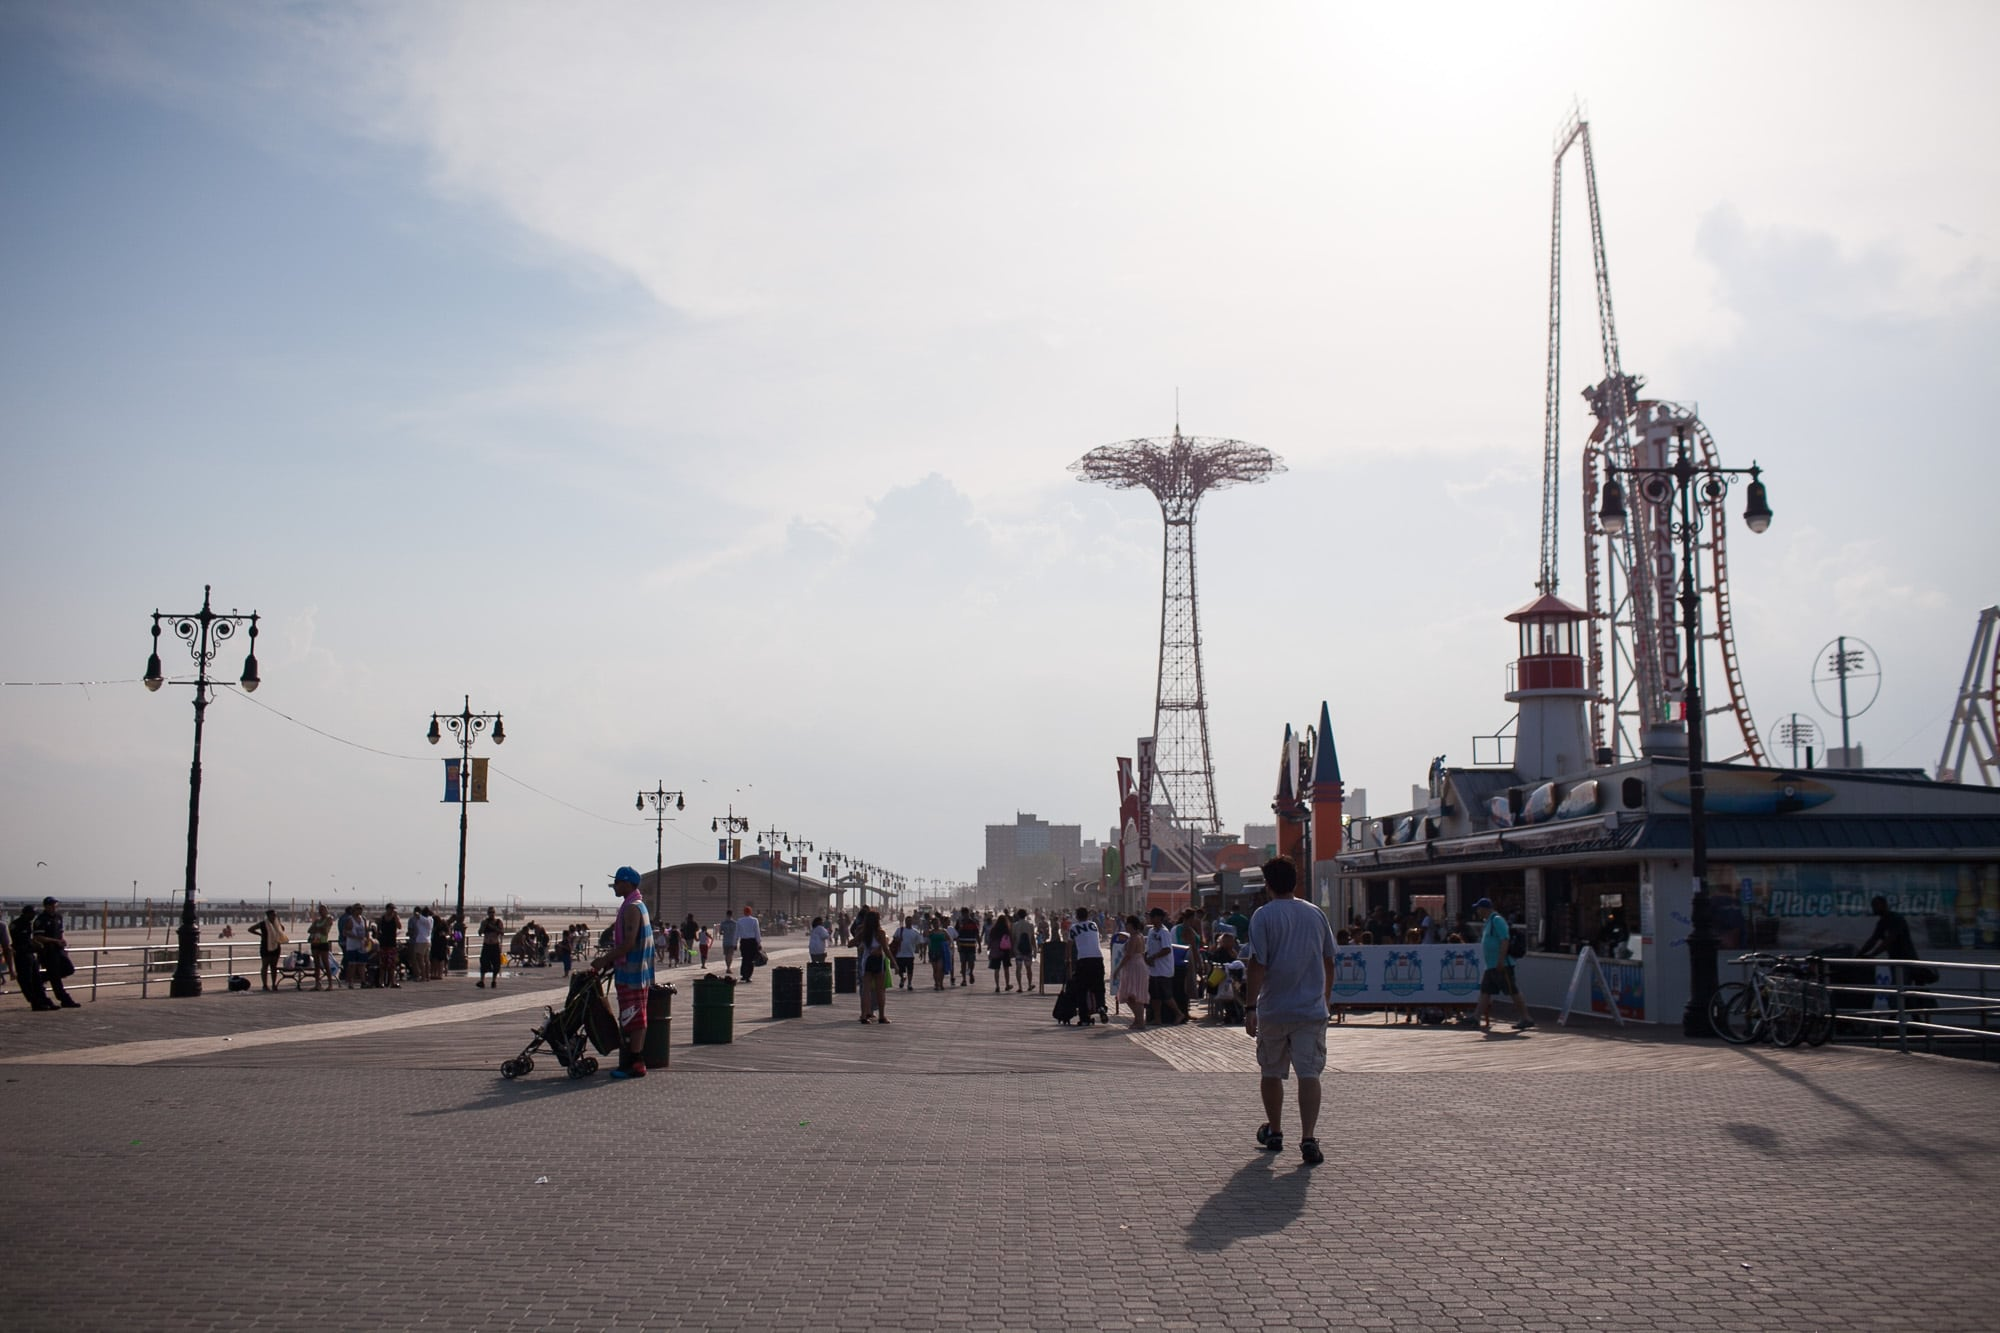 Boardwalk in Coney Island, New York.